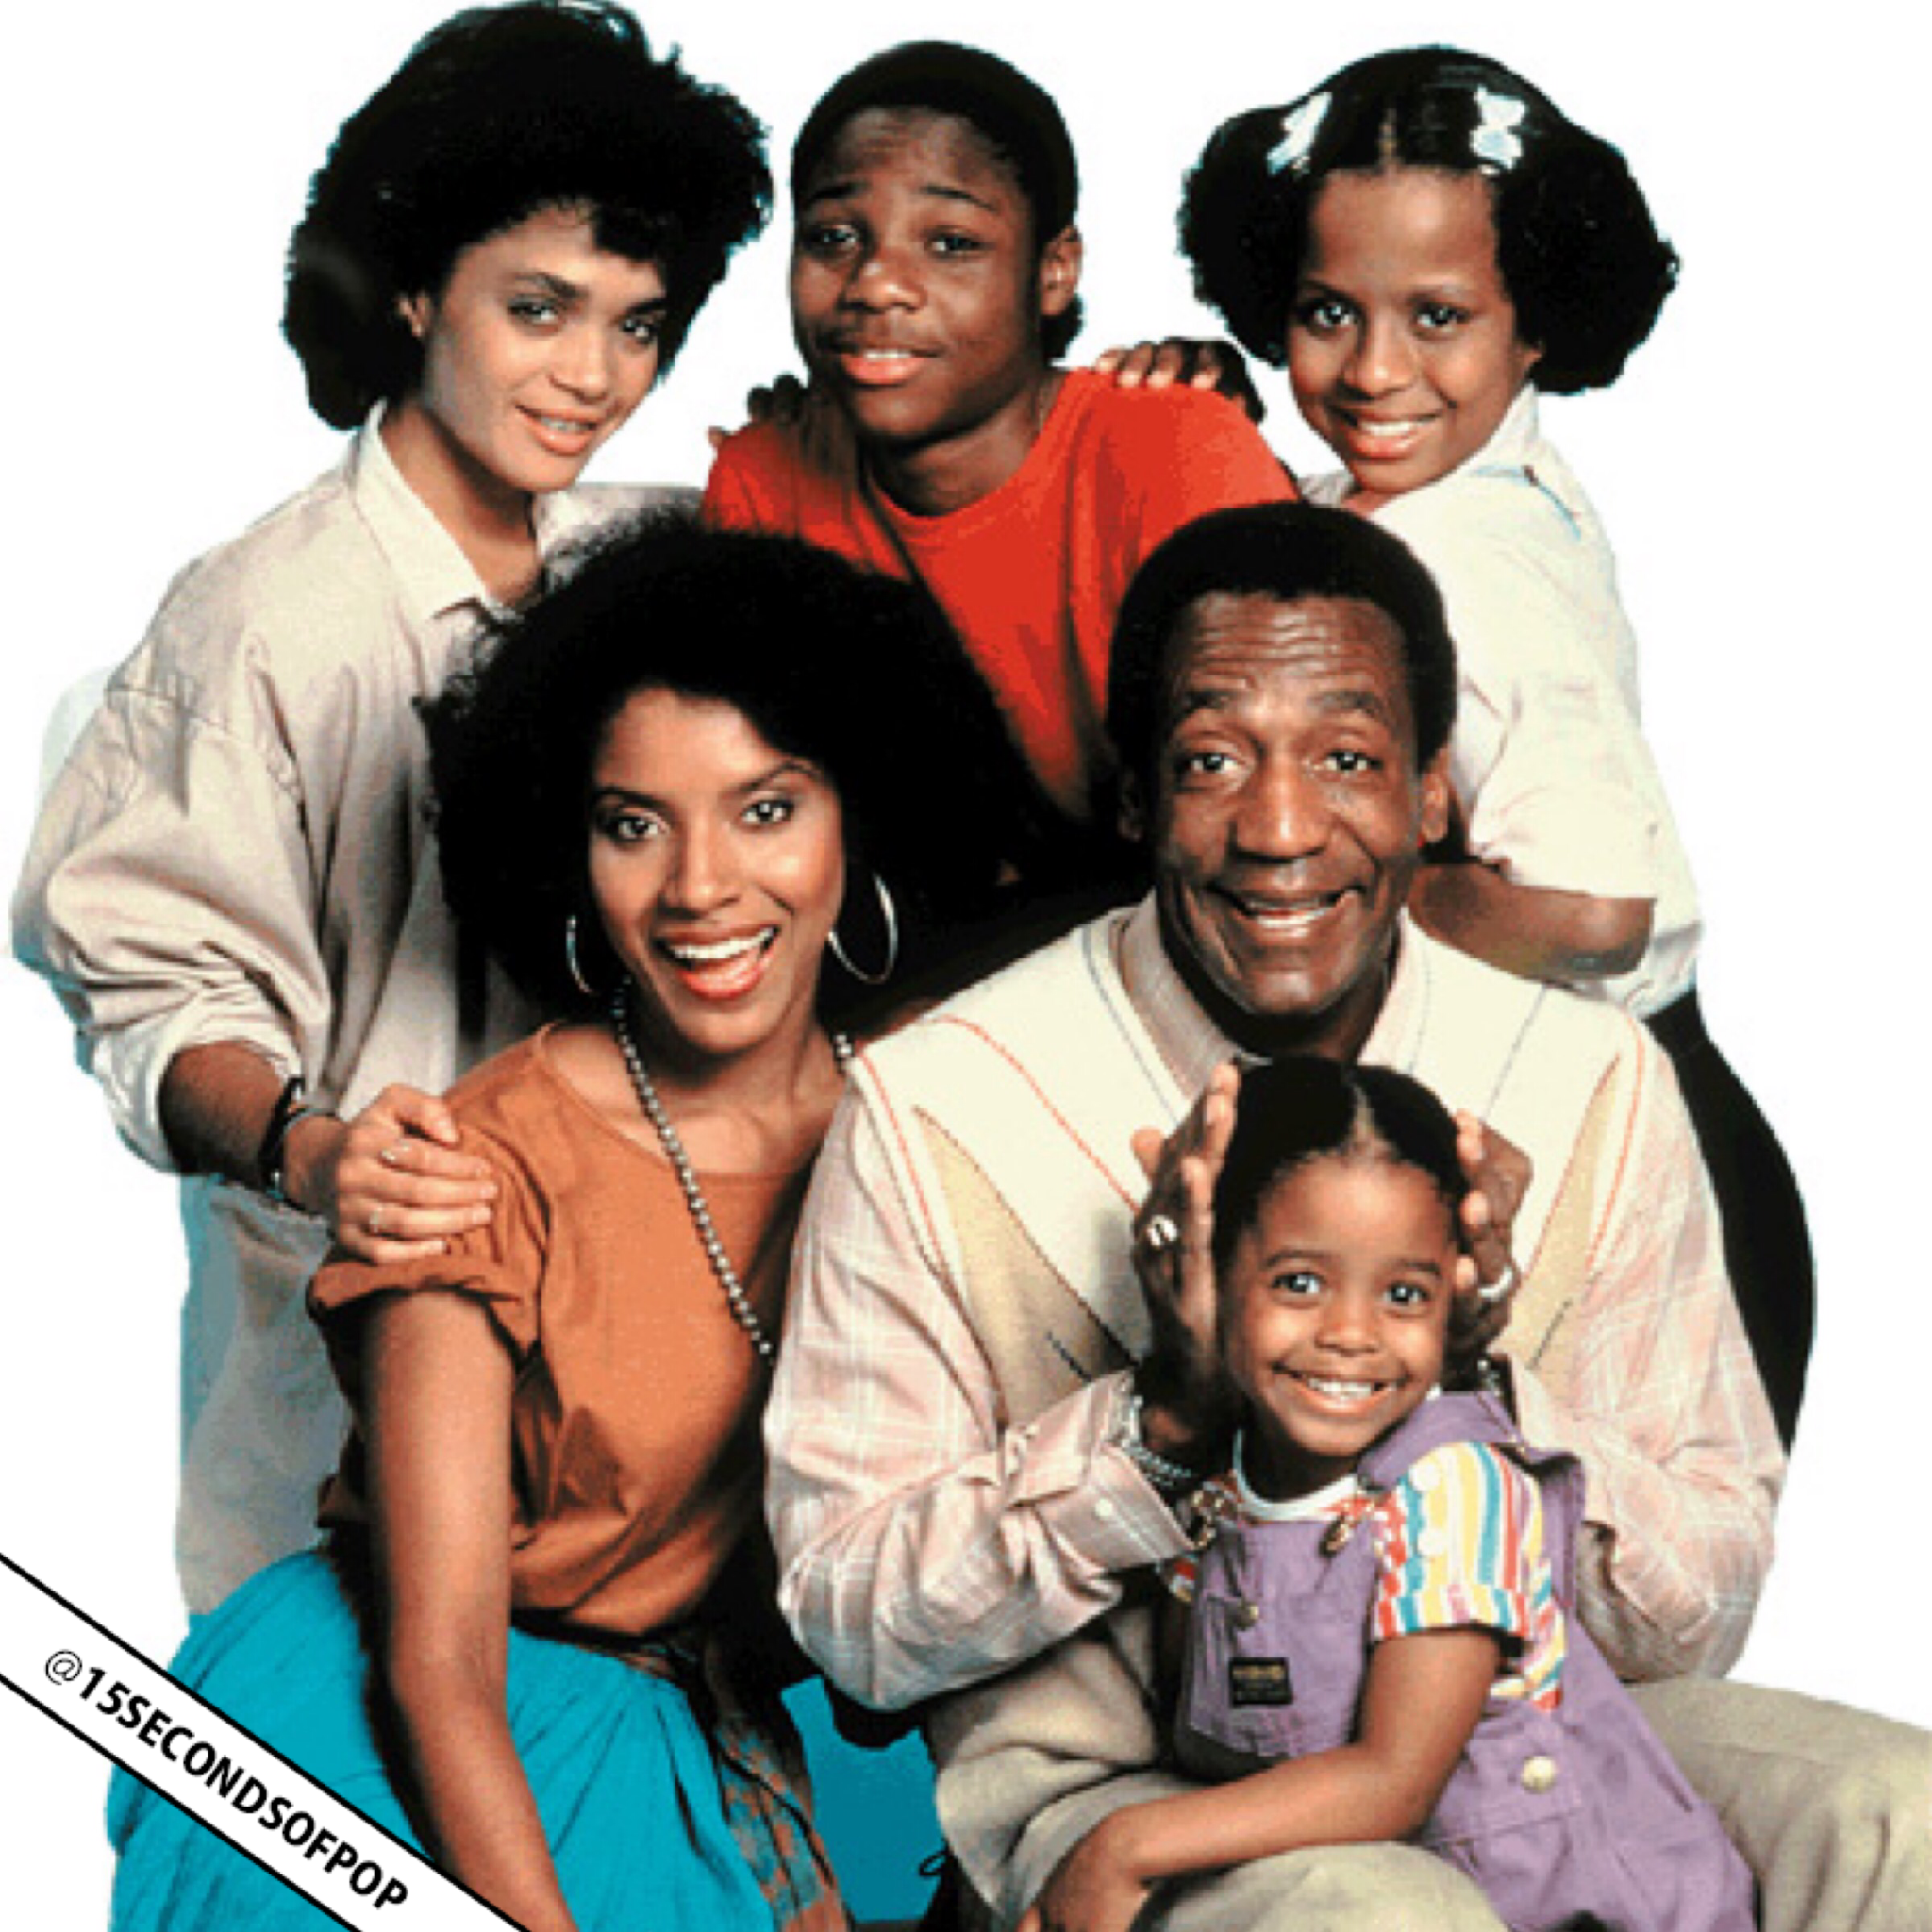 Bill cosby family photos - Also Nbc Has Pulled The Plug On A New Bill Cosby Comedy Show That Was Under Development